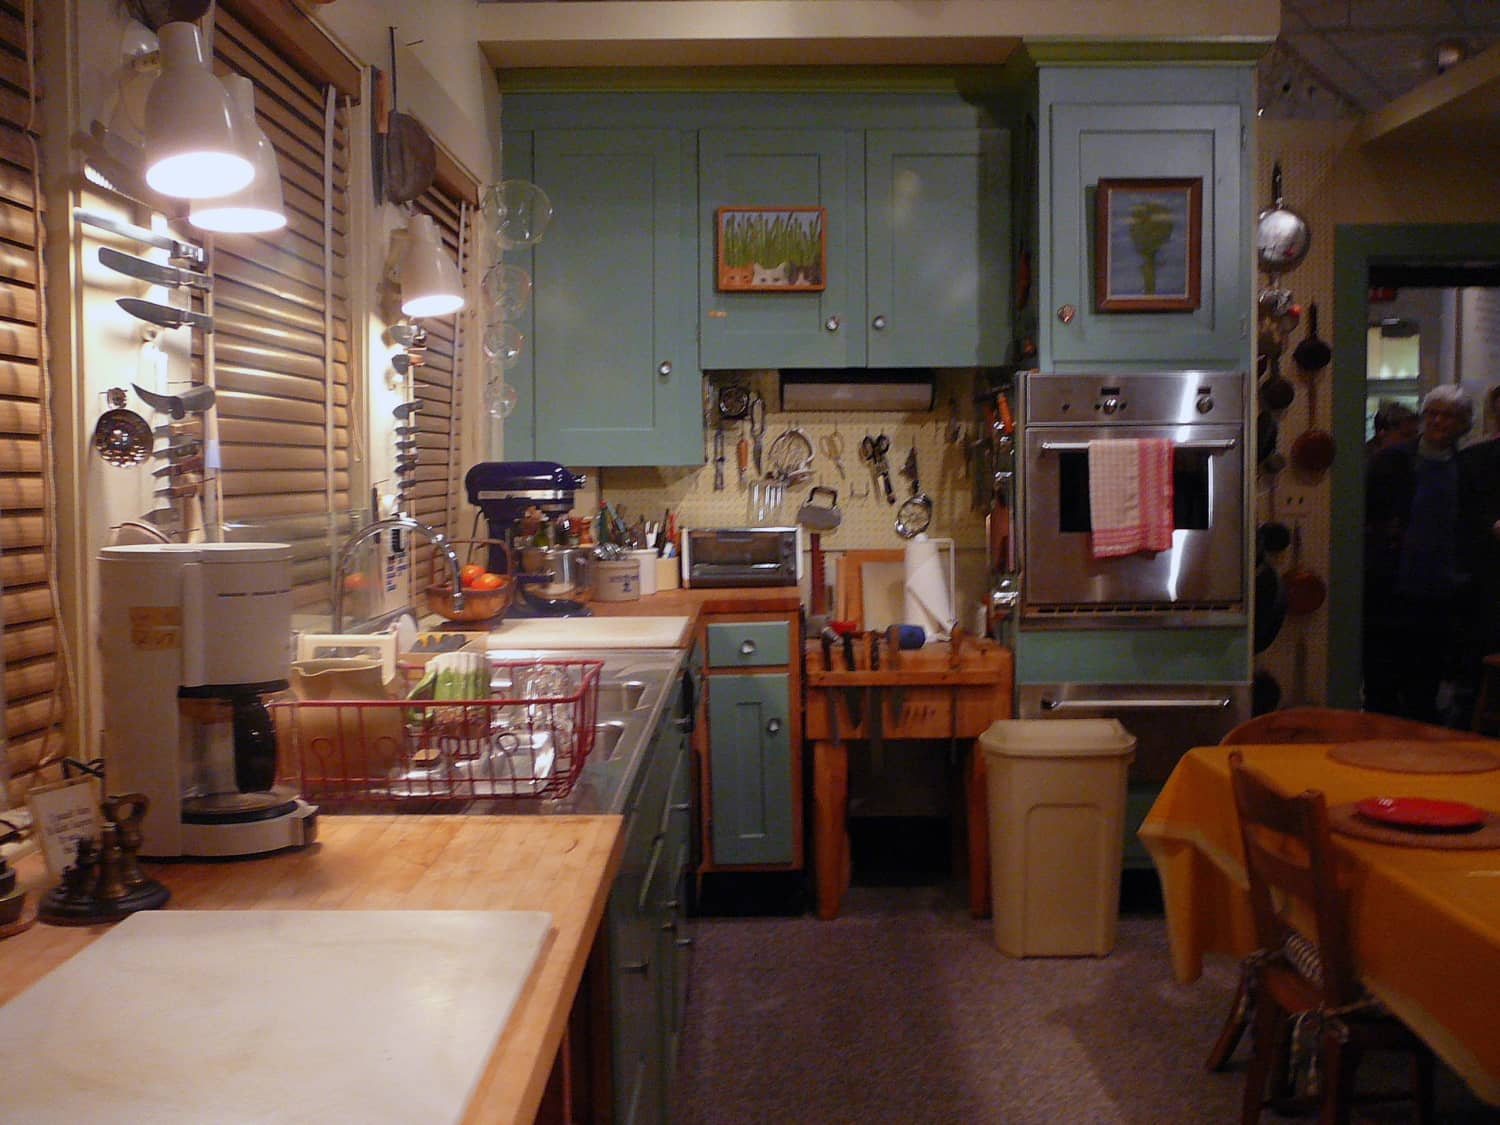 5 Brilliant Ideas to Steal from Julia Child's World Famous Kitchen